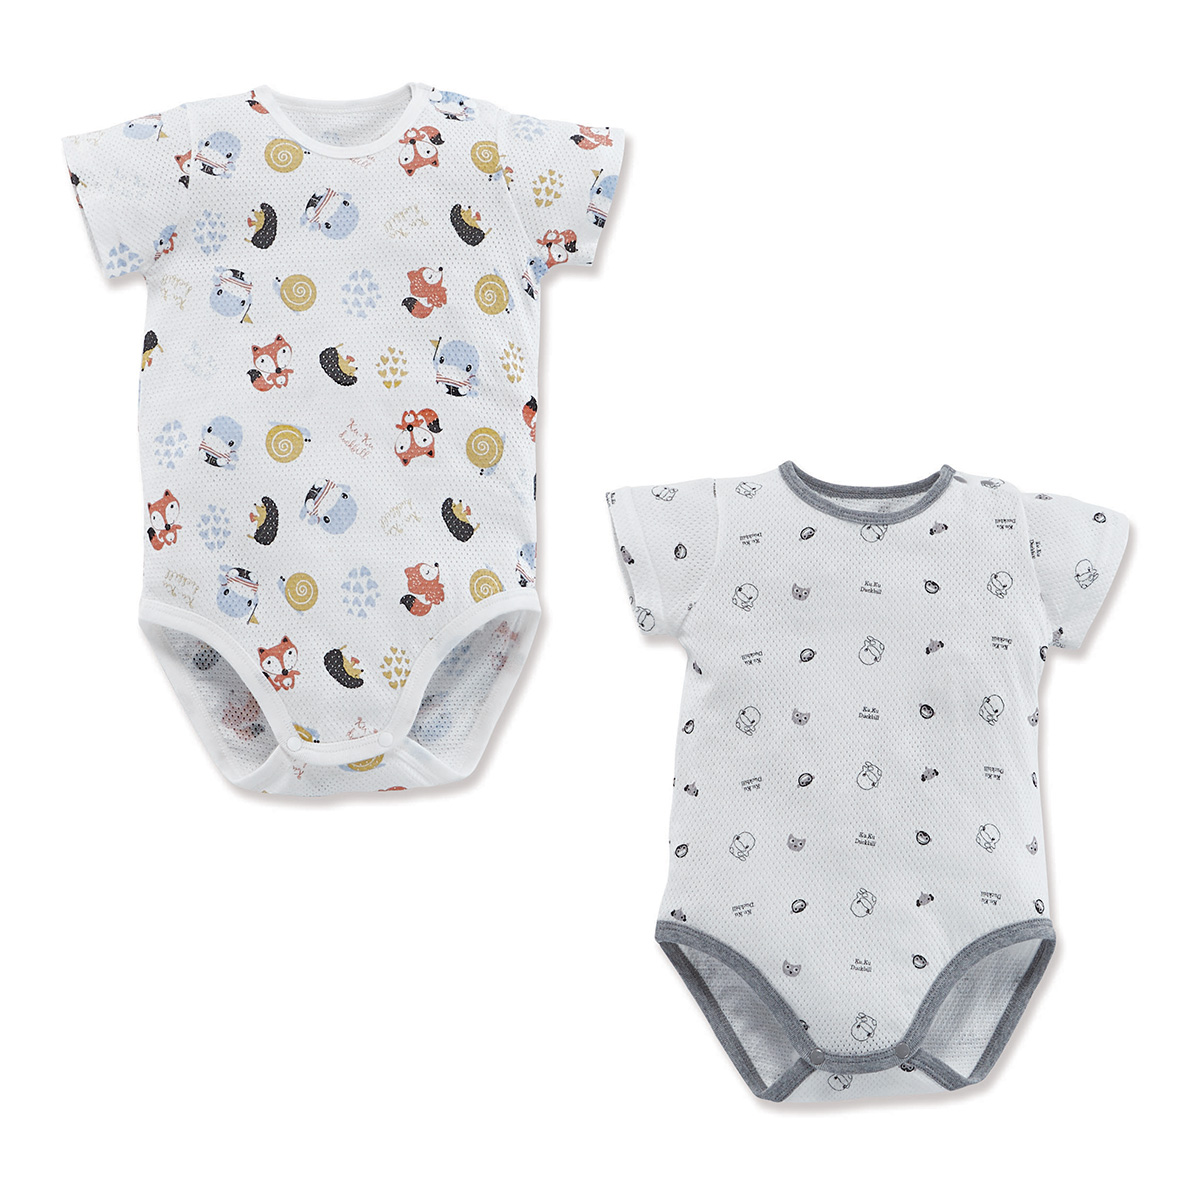 proimages/Cottons&BabyClothing/BabyClothesSeries/GauzeClothes/2791-93/2793-11.jpg